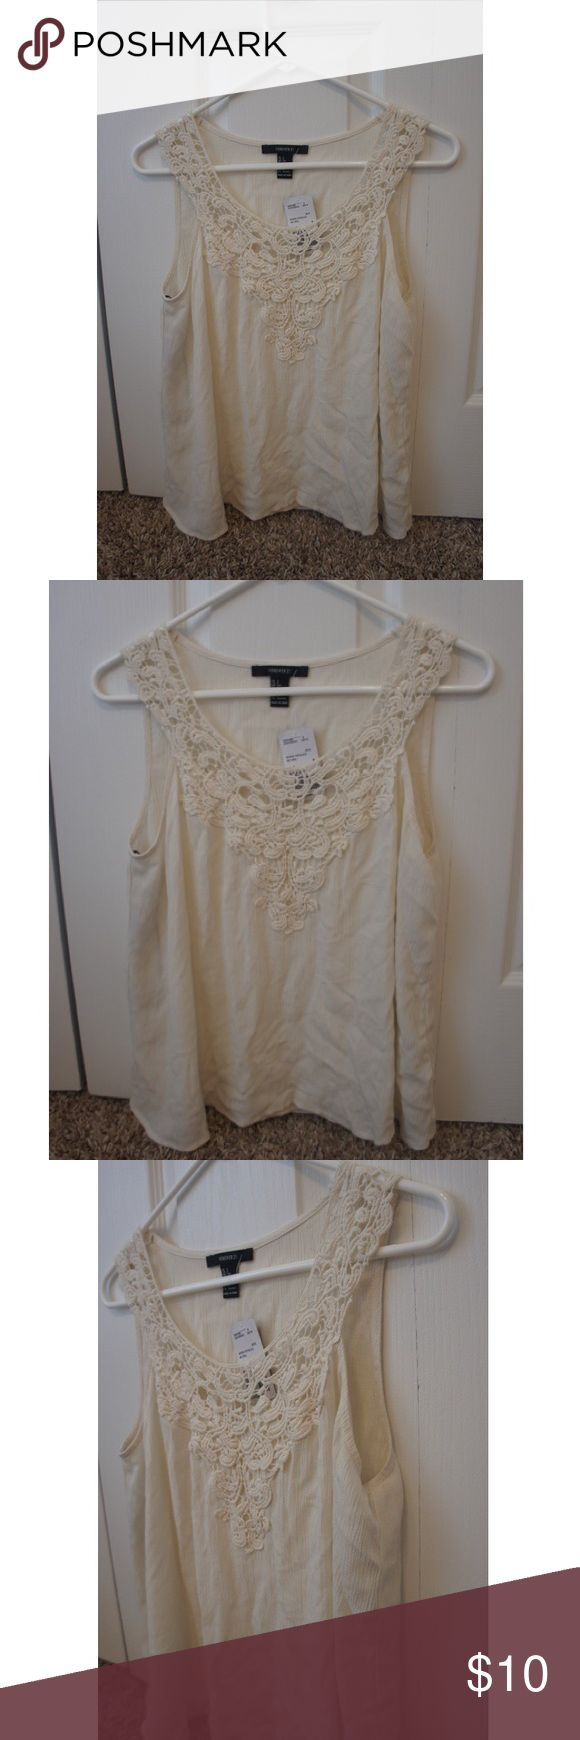 never worn, tags still attached, cream women's top cream 100% rayon shell and cotton women's sleeveless top with woven detailing at the top; never worn and tags still attached! Forever 21 Tops Tank Tops